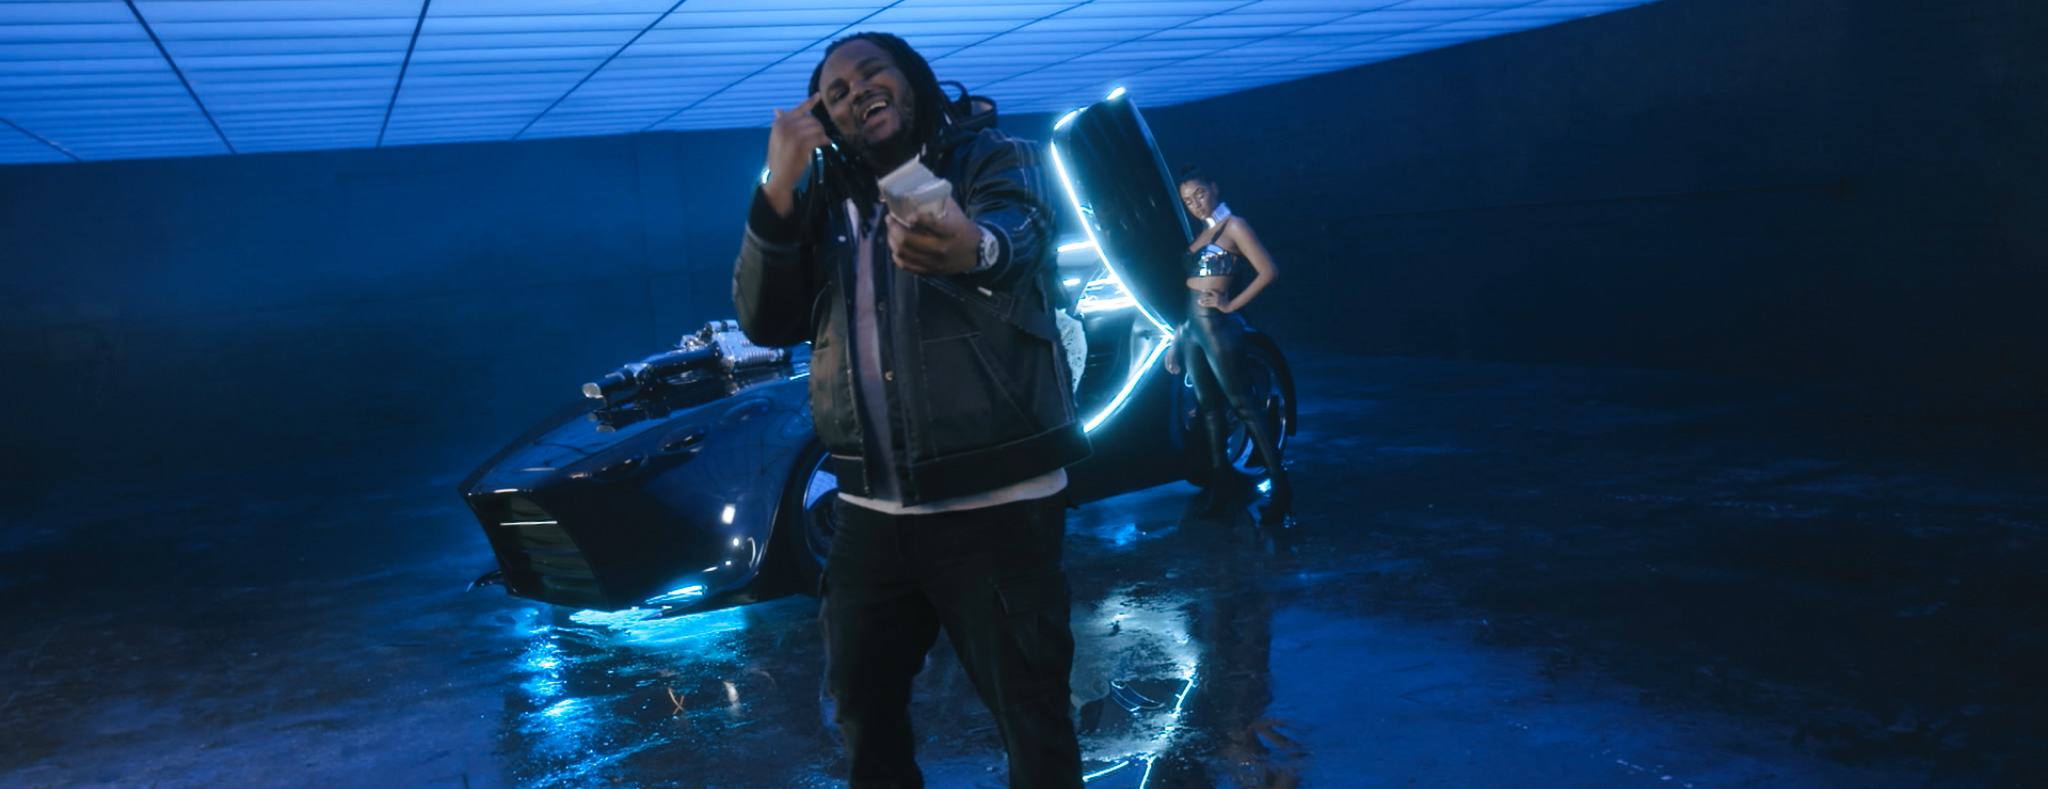 PNB ROCK FT. TEE GRIZZLEY - GO TO MARS (OFFICIAL VIDEO) - DIRECTED BY MAJIK FILMS.mov.00_01_45_08.Still116.jpg